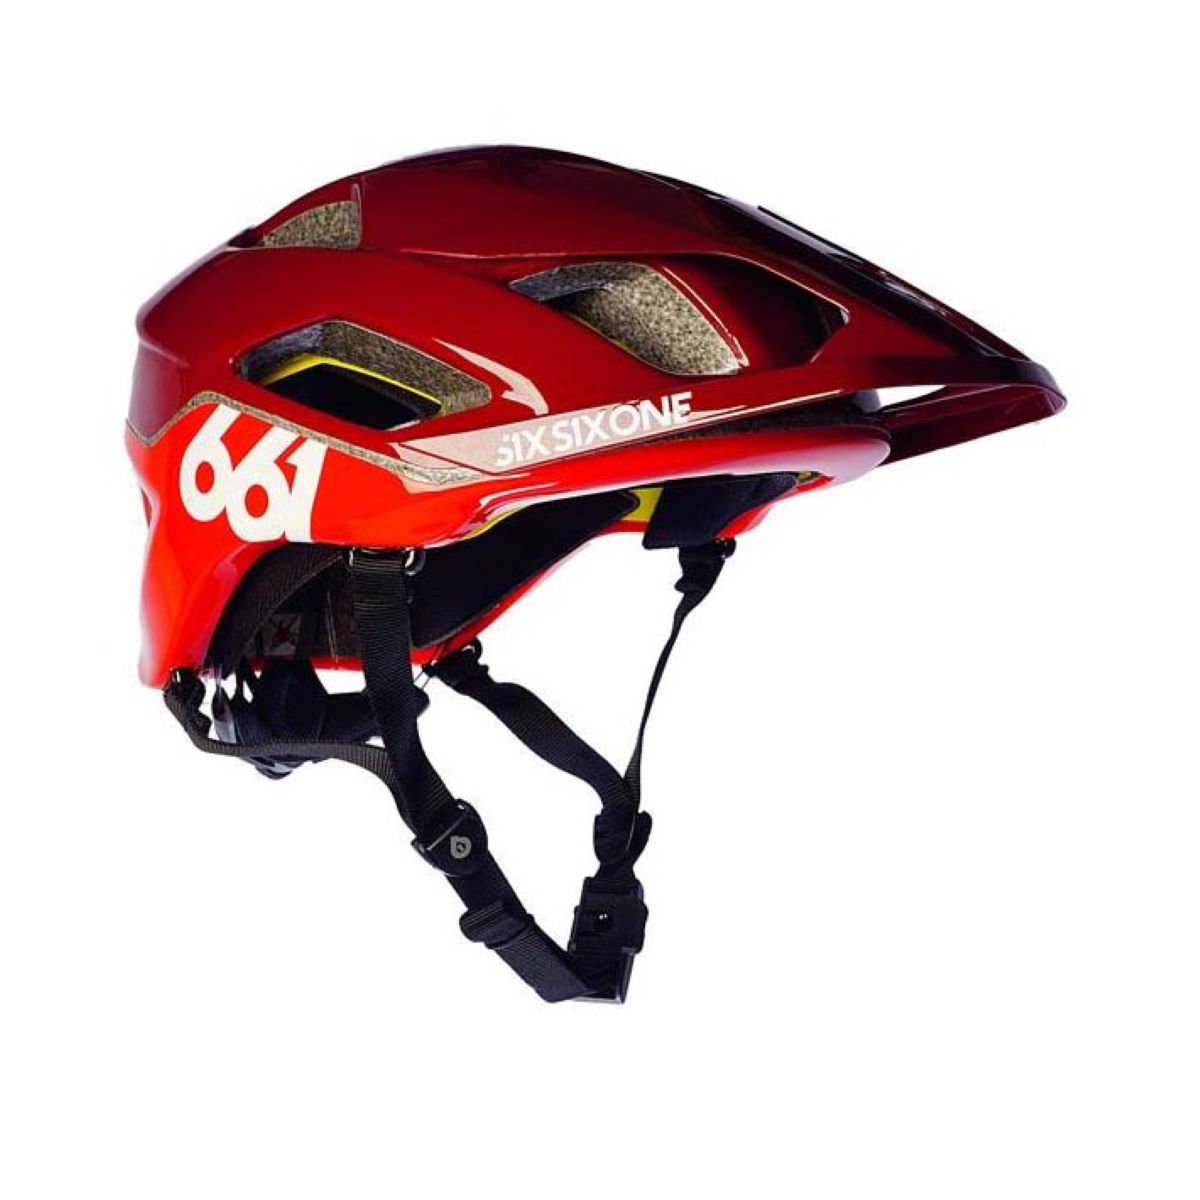 Casque SixSixOne Evo AM MIPS - XS/S Red/Red Casques